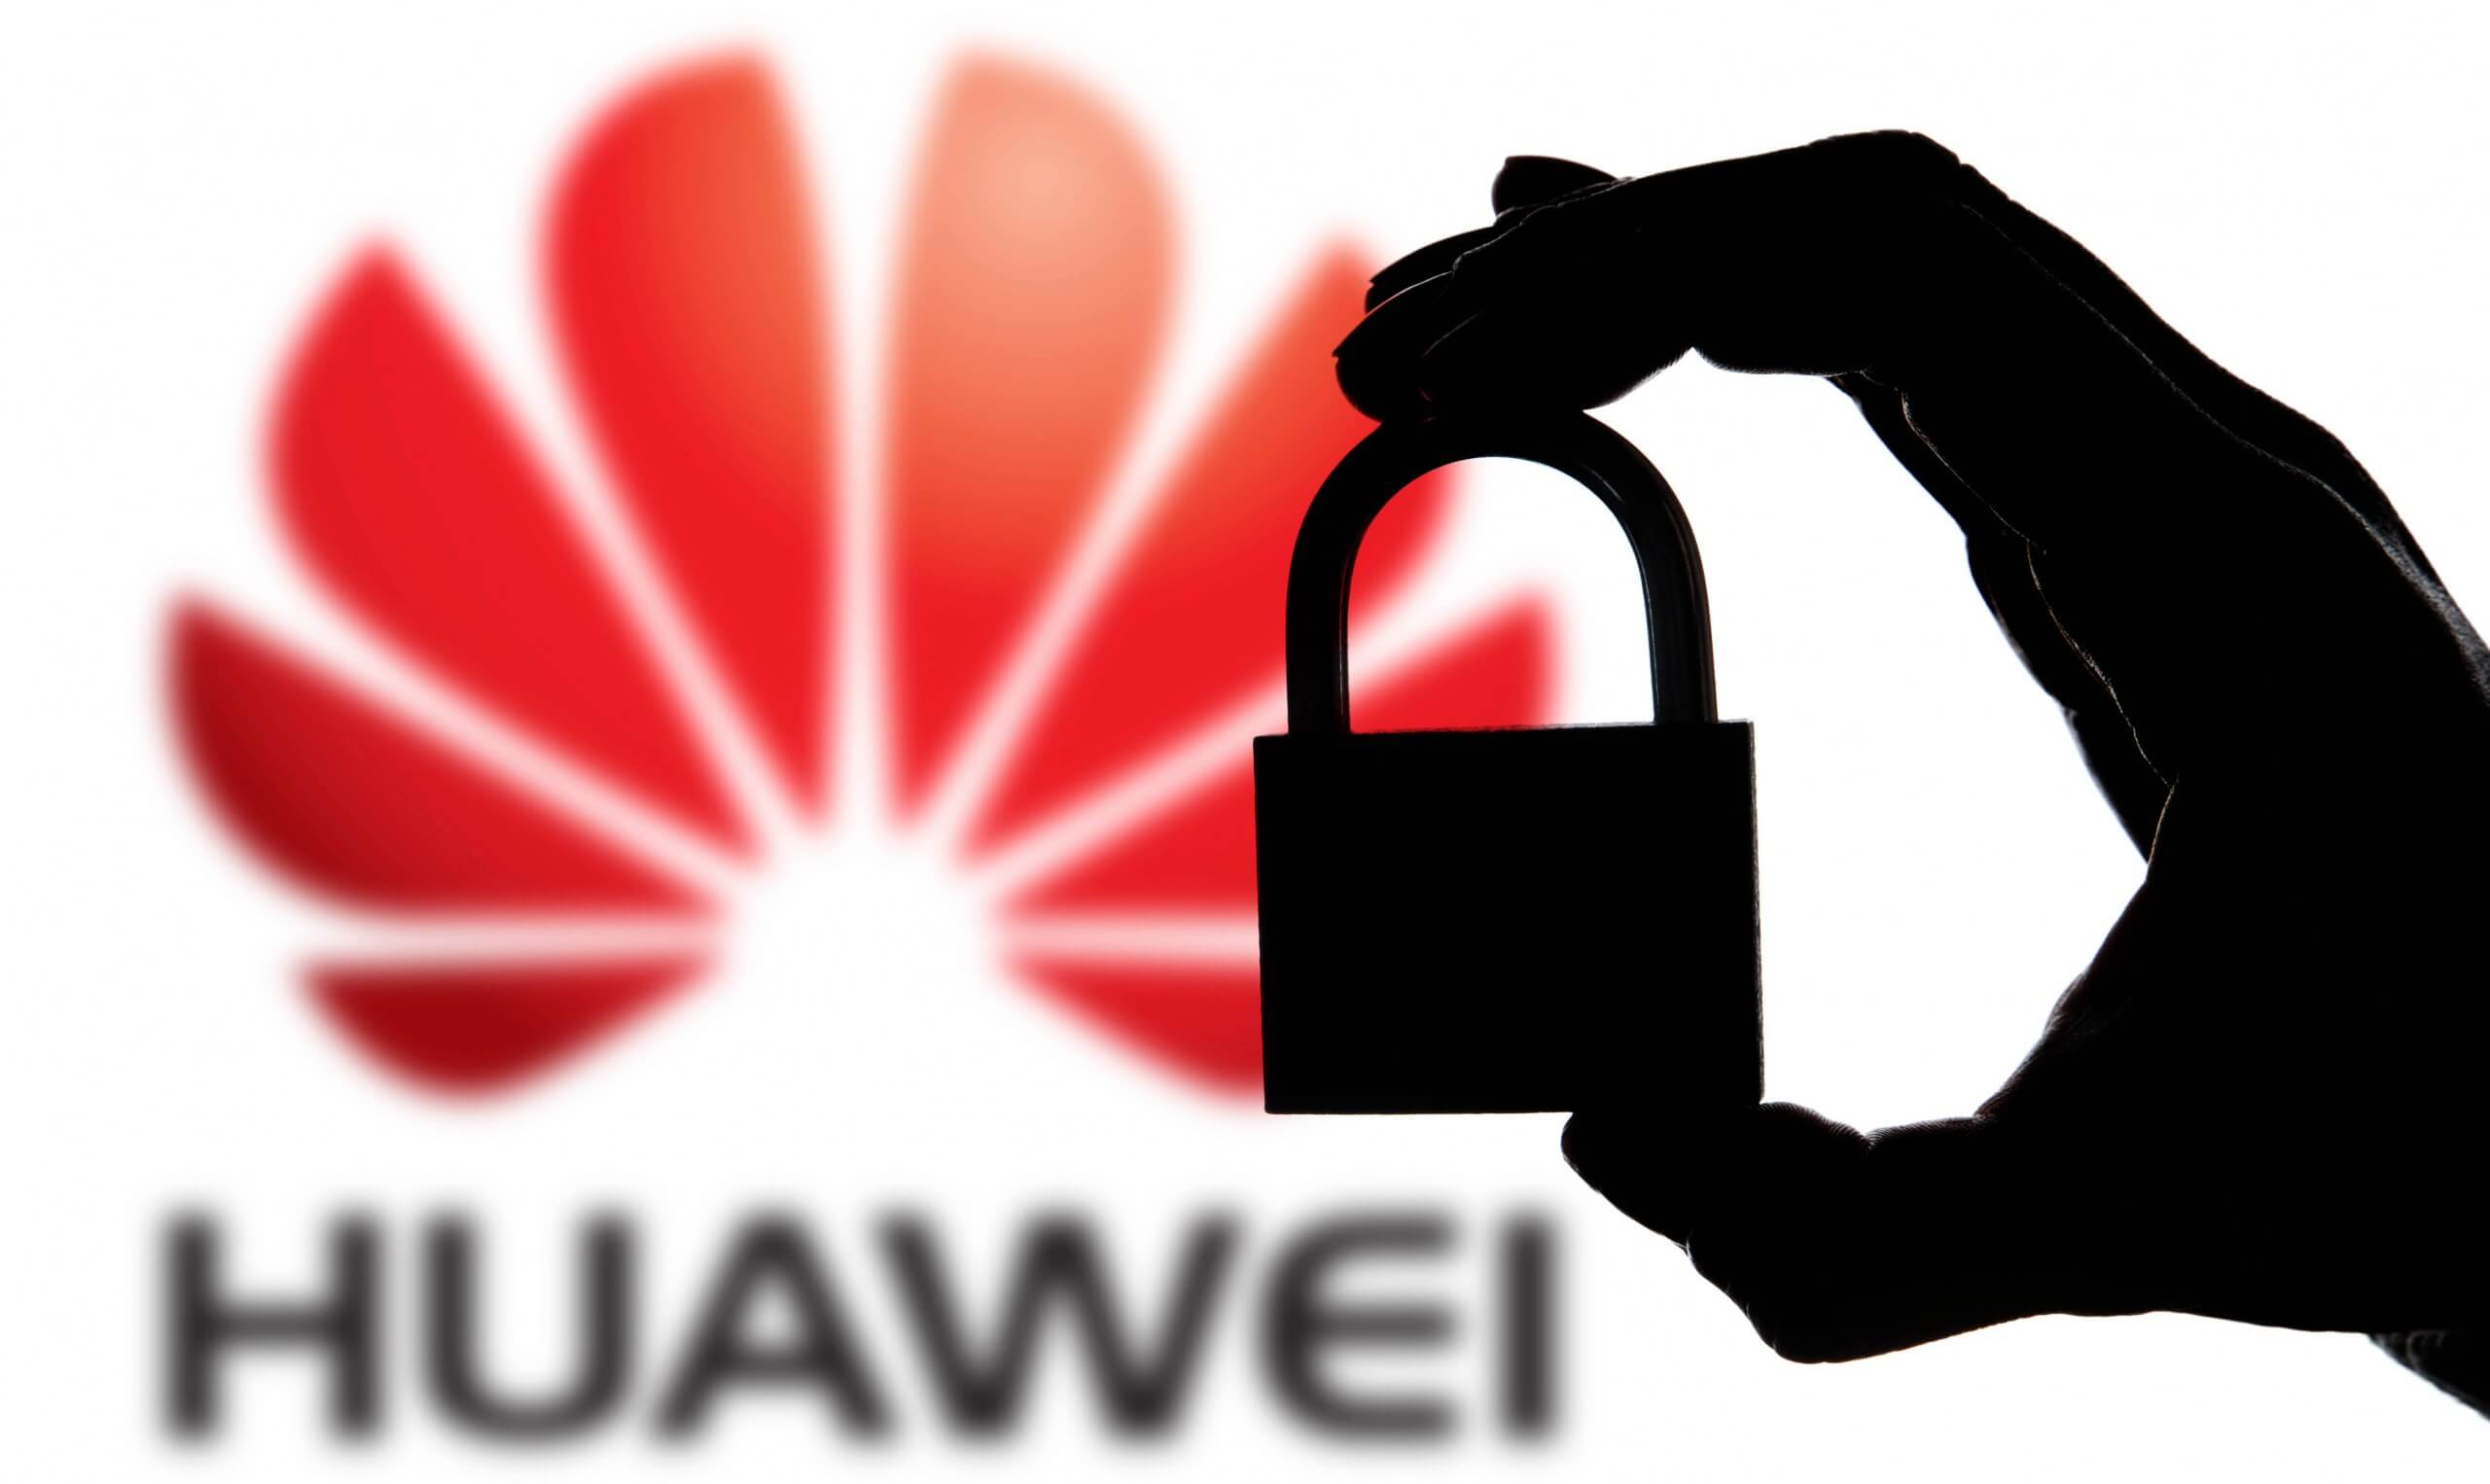 Huawei banned Smartphonegreece